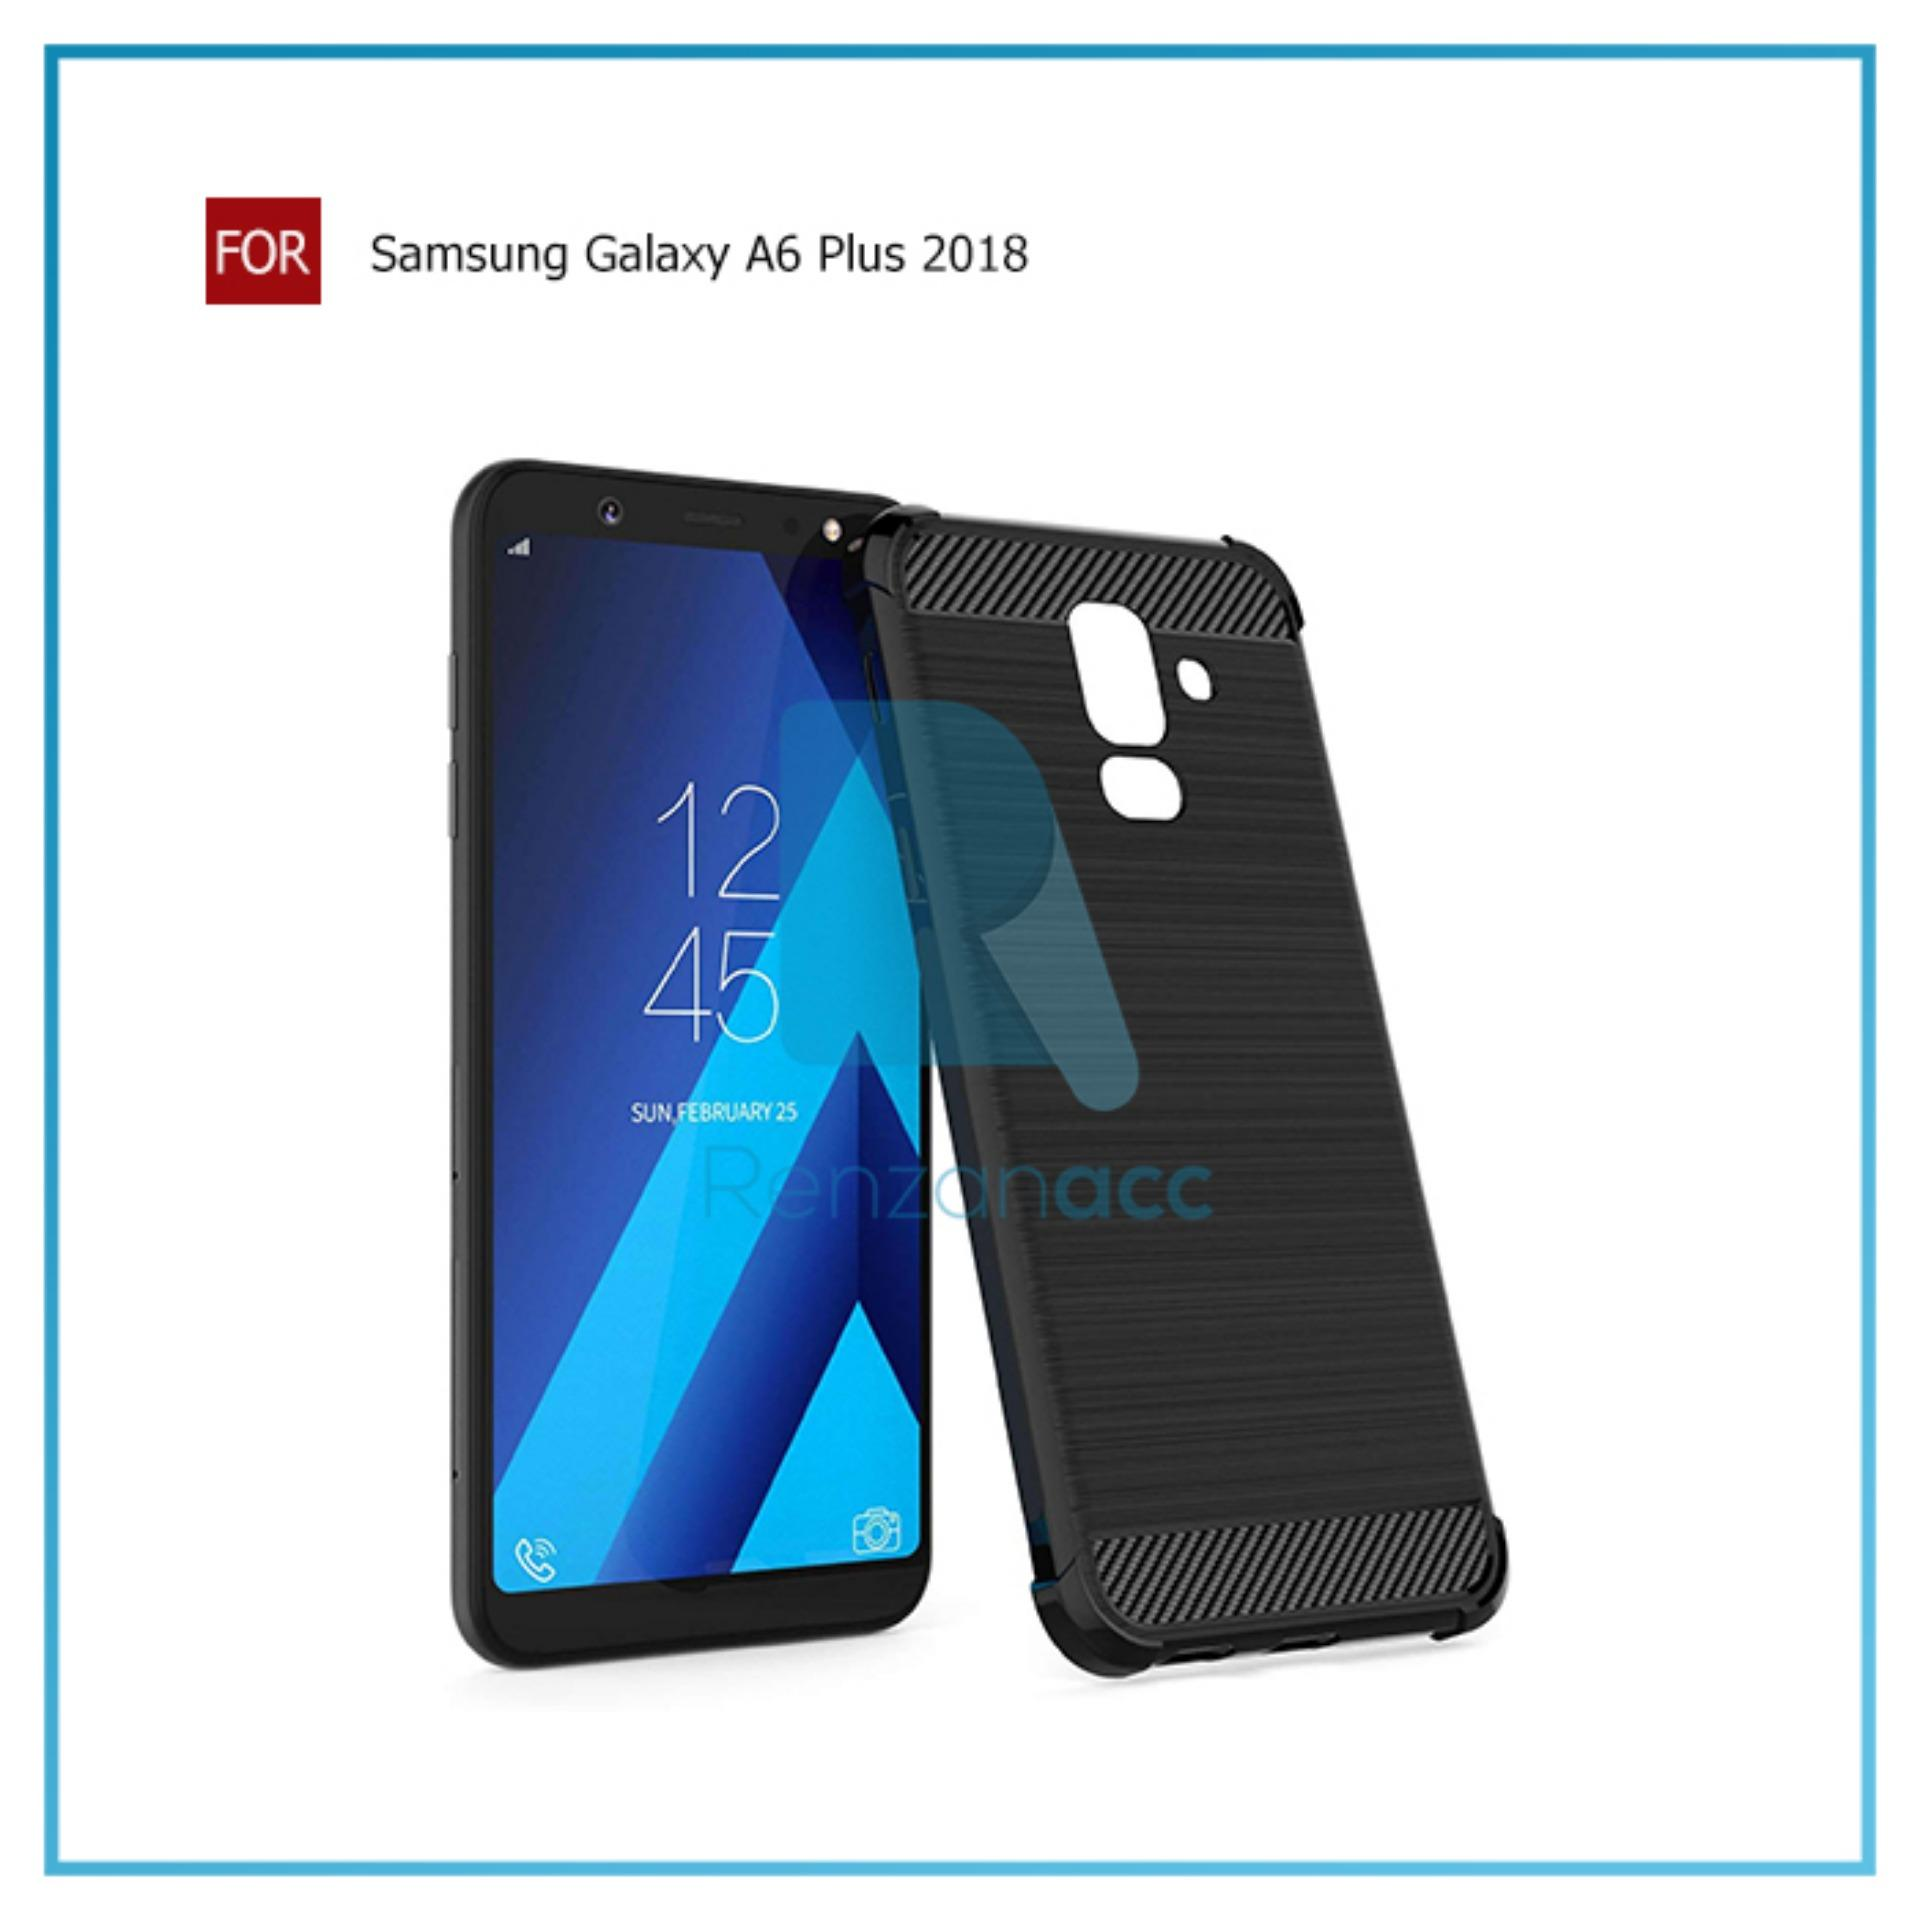 Renzanaacc Brushed Corner Protection Cushion Premium Carbon Shockproof TPU Case For Samsung Galaxy A6 Plus 2018